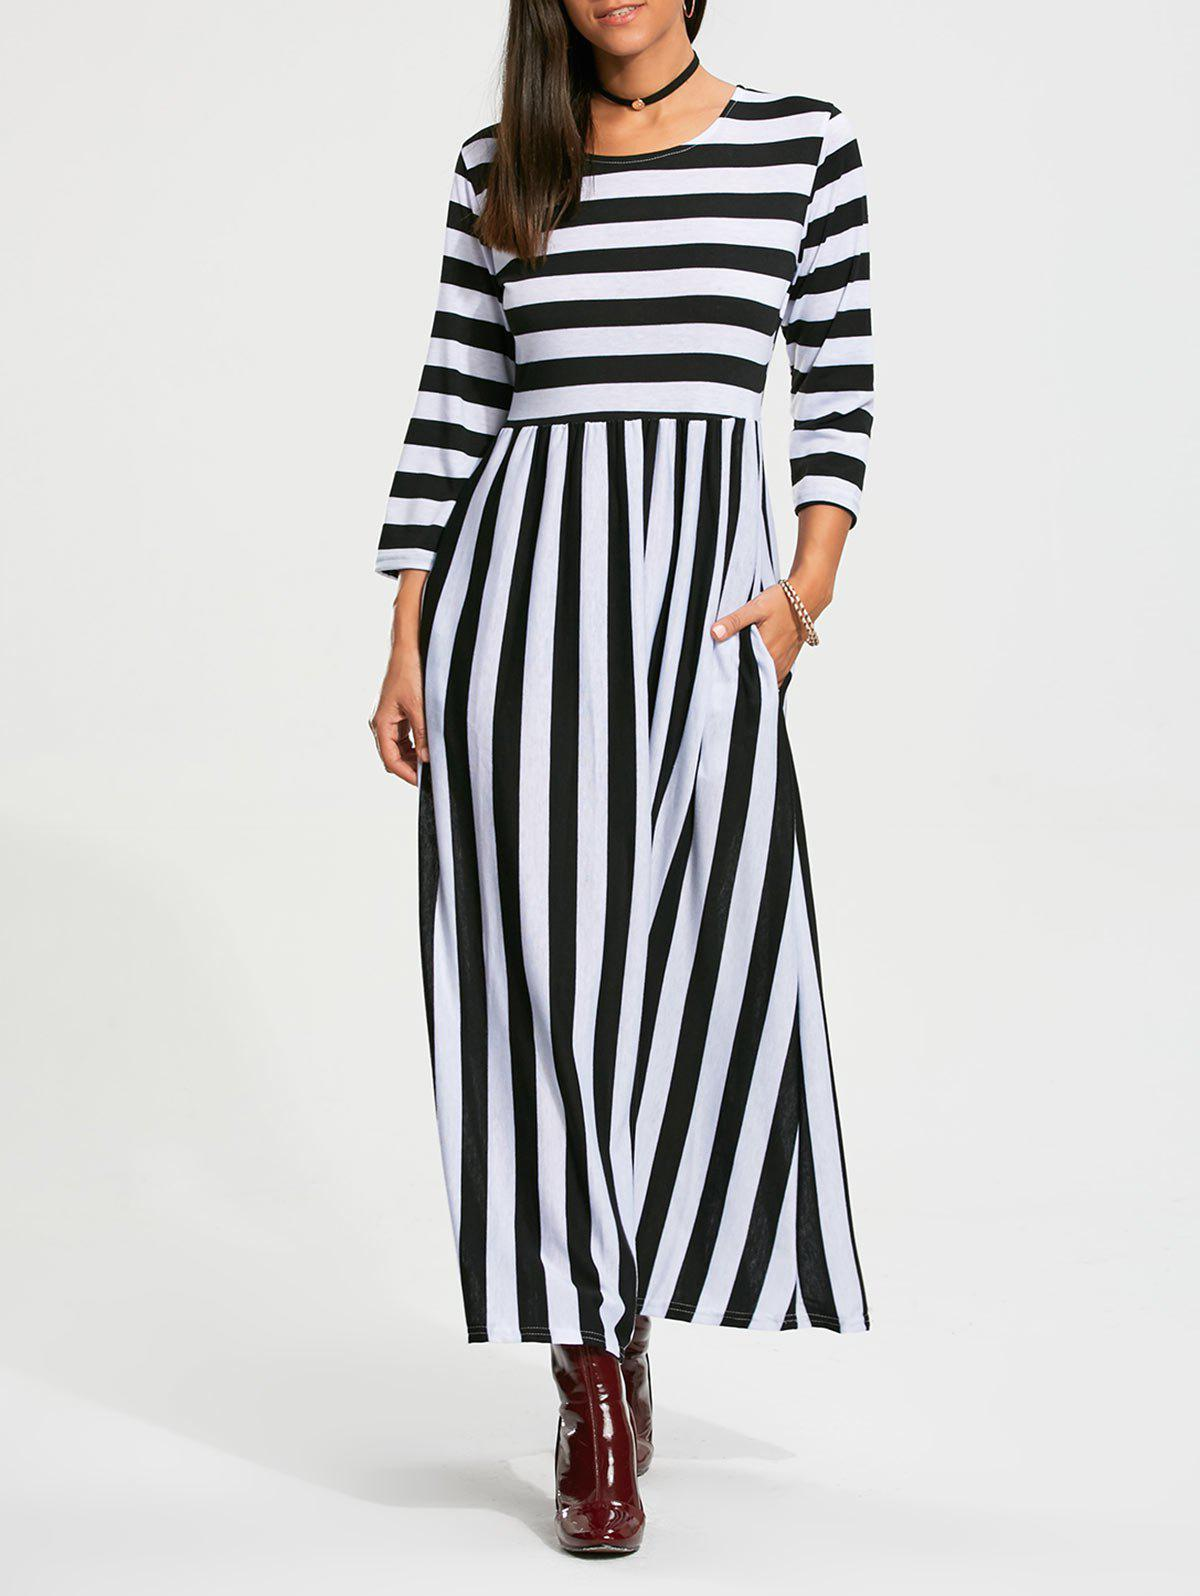 Affordable High Waist Stripe Maxi Dress with Pocket